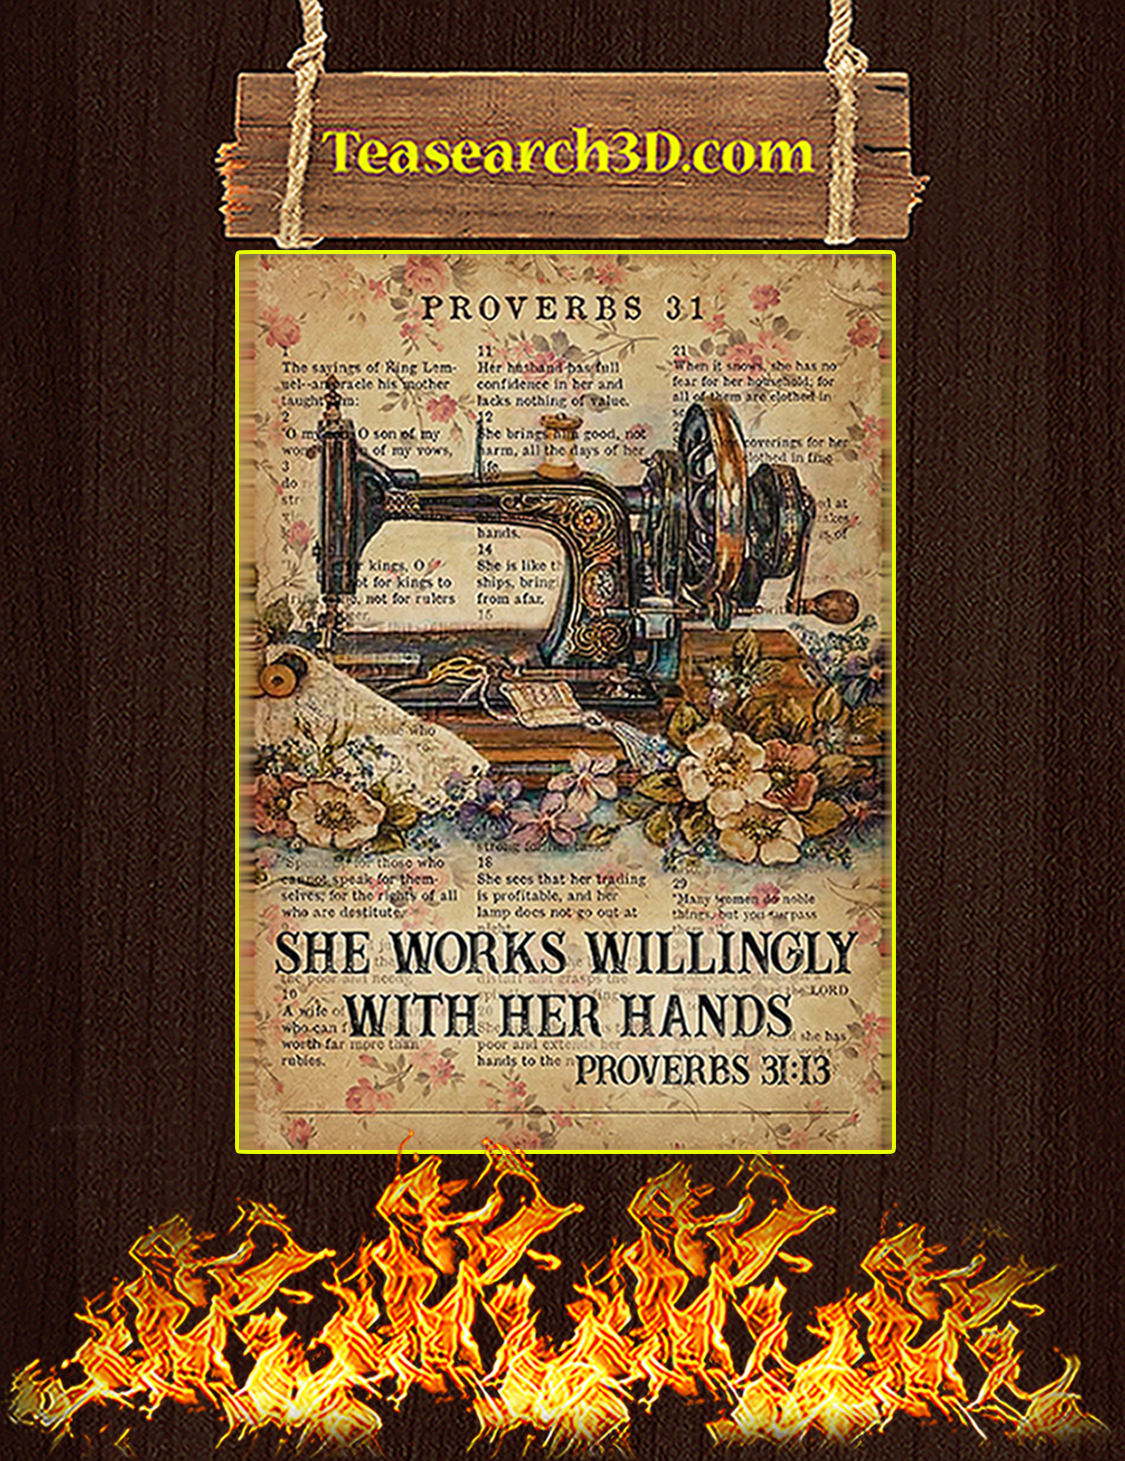 Sewing Proverbs 31 she works willingly with her hands poster A3